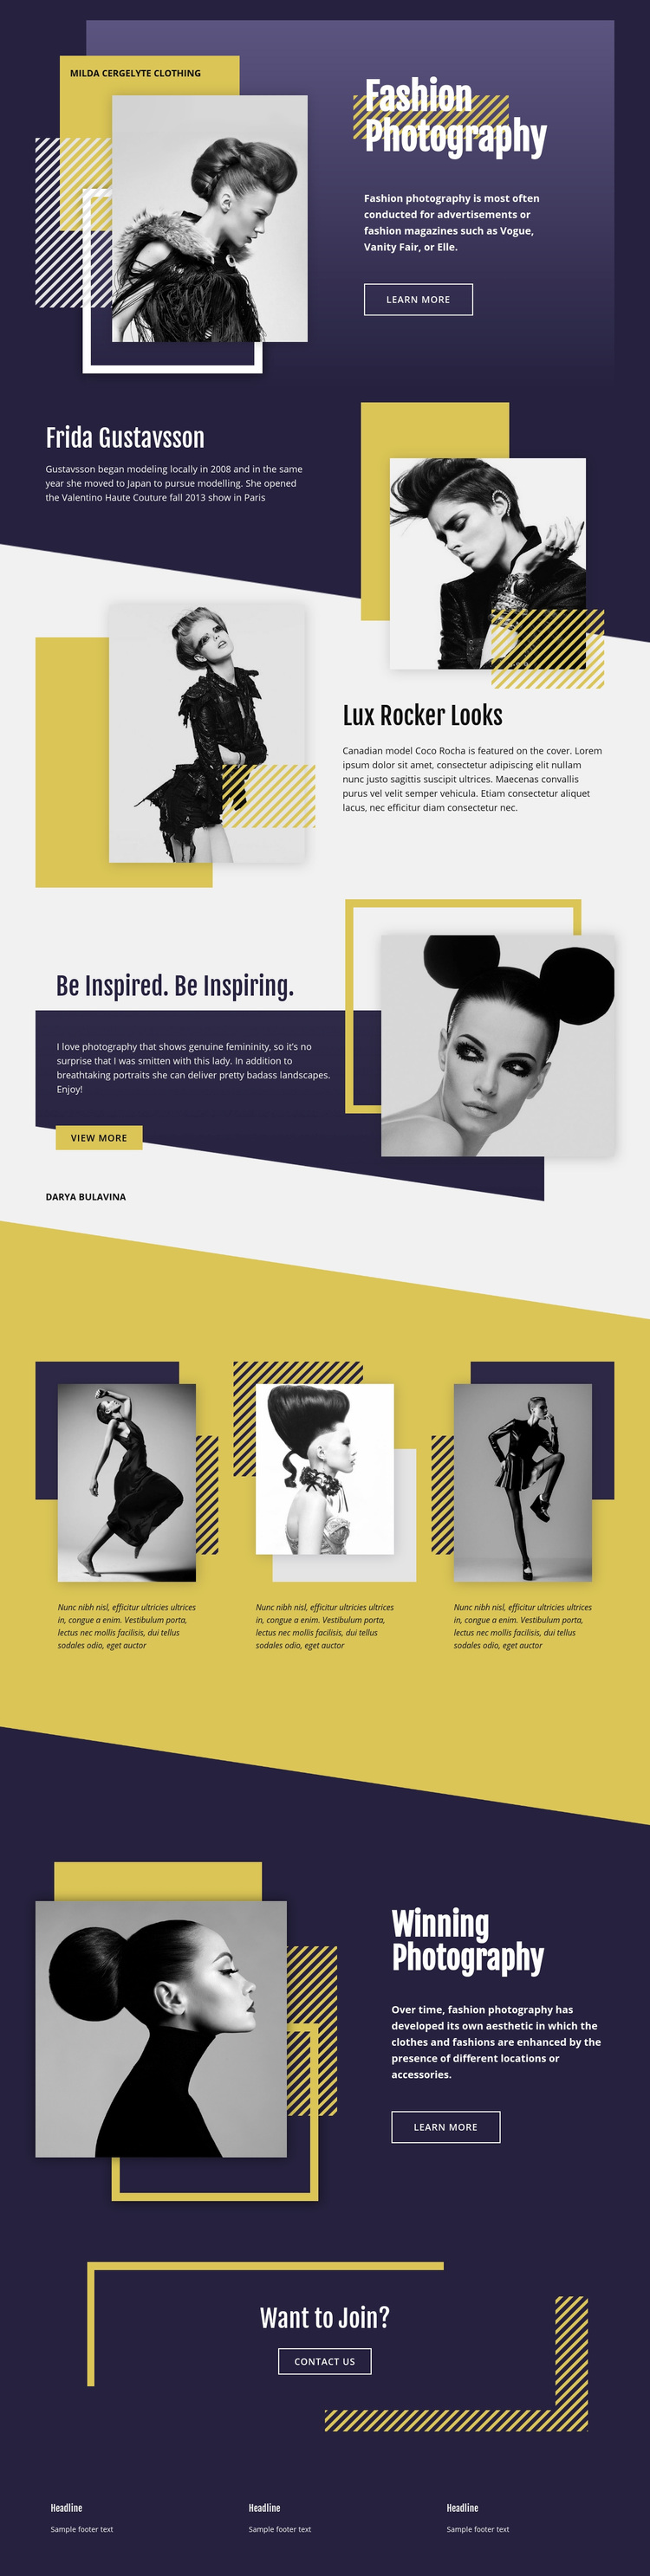 Fashion Photography Overlapping Web Page Designer